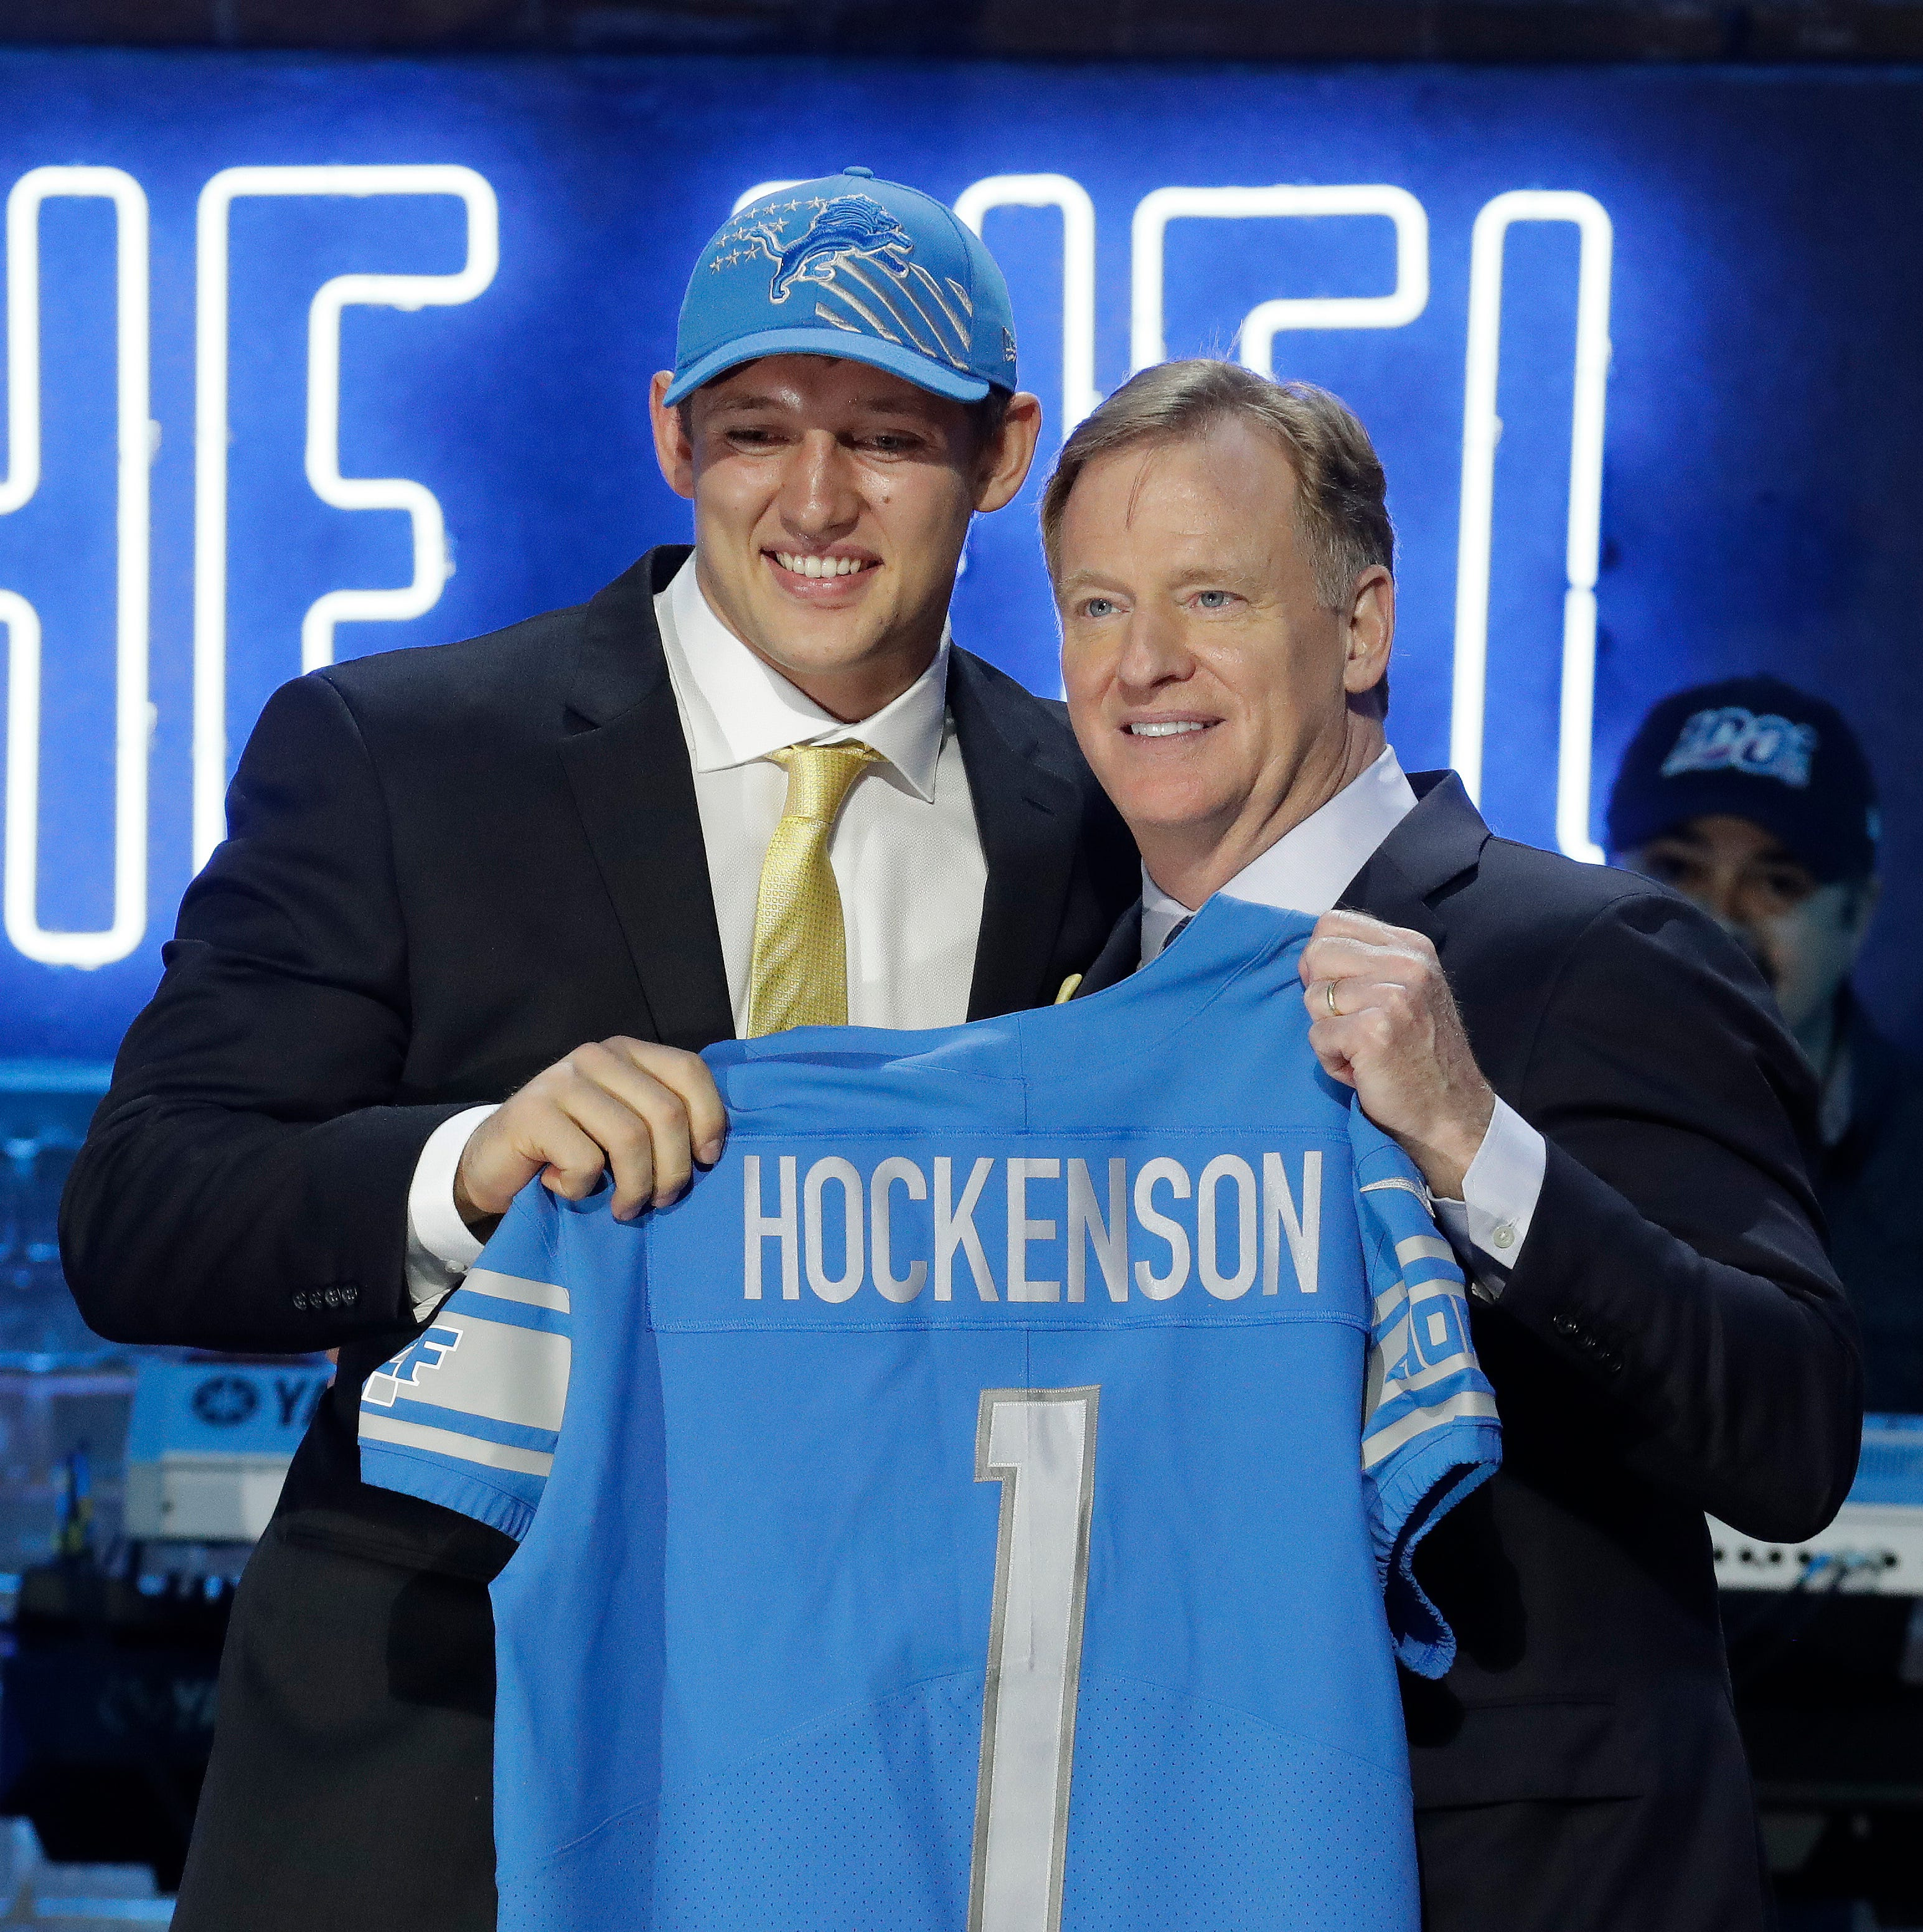 Lions haul in 'natural catcher' T.J. Hockenson with No. 8 pick